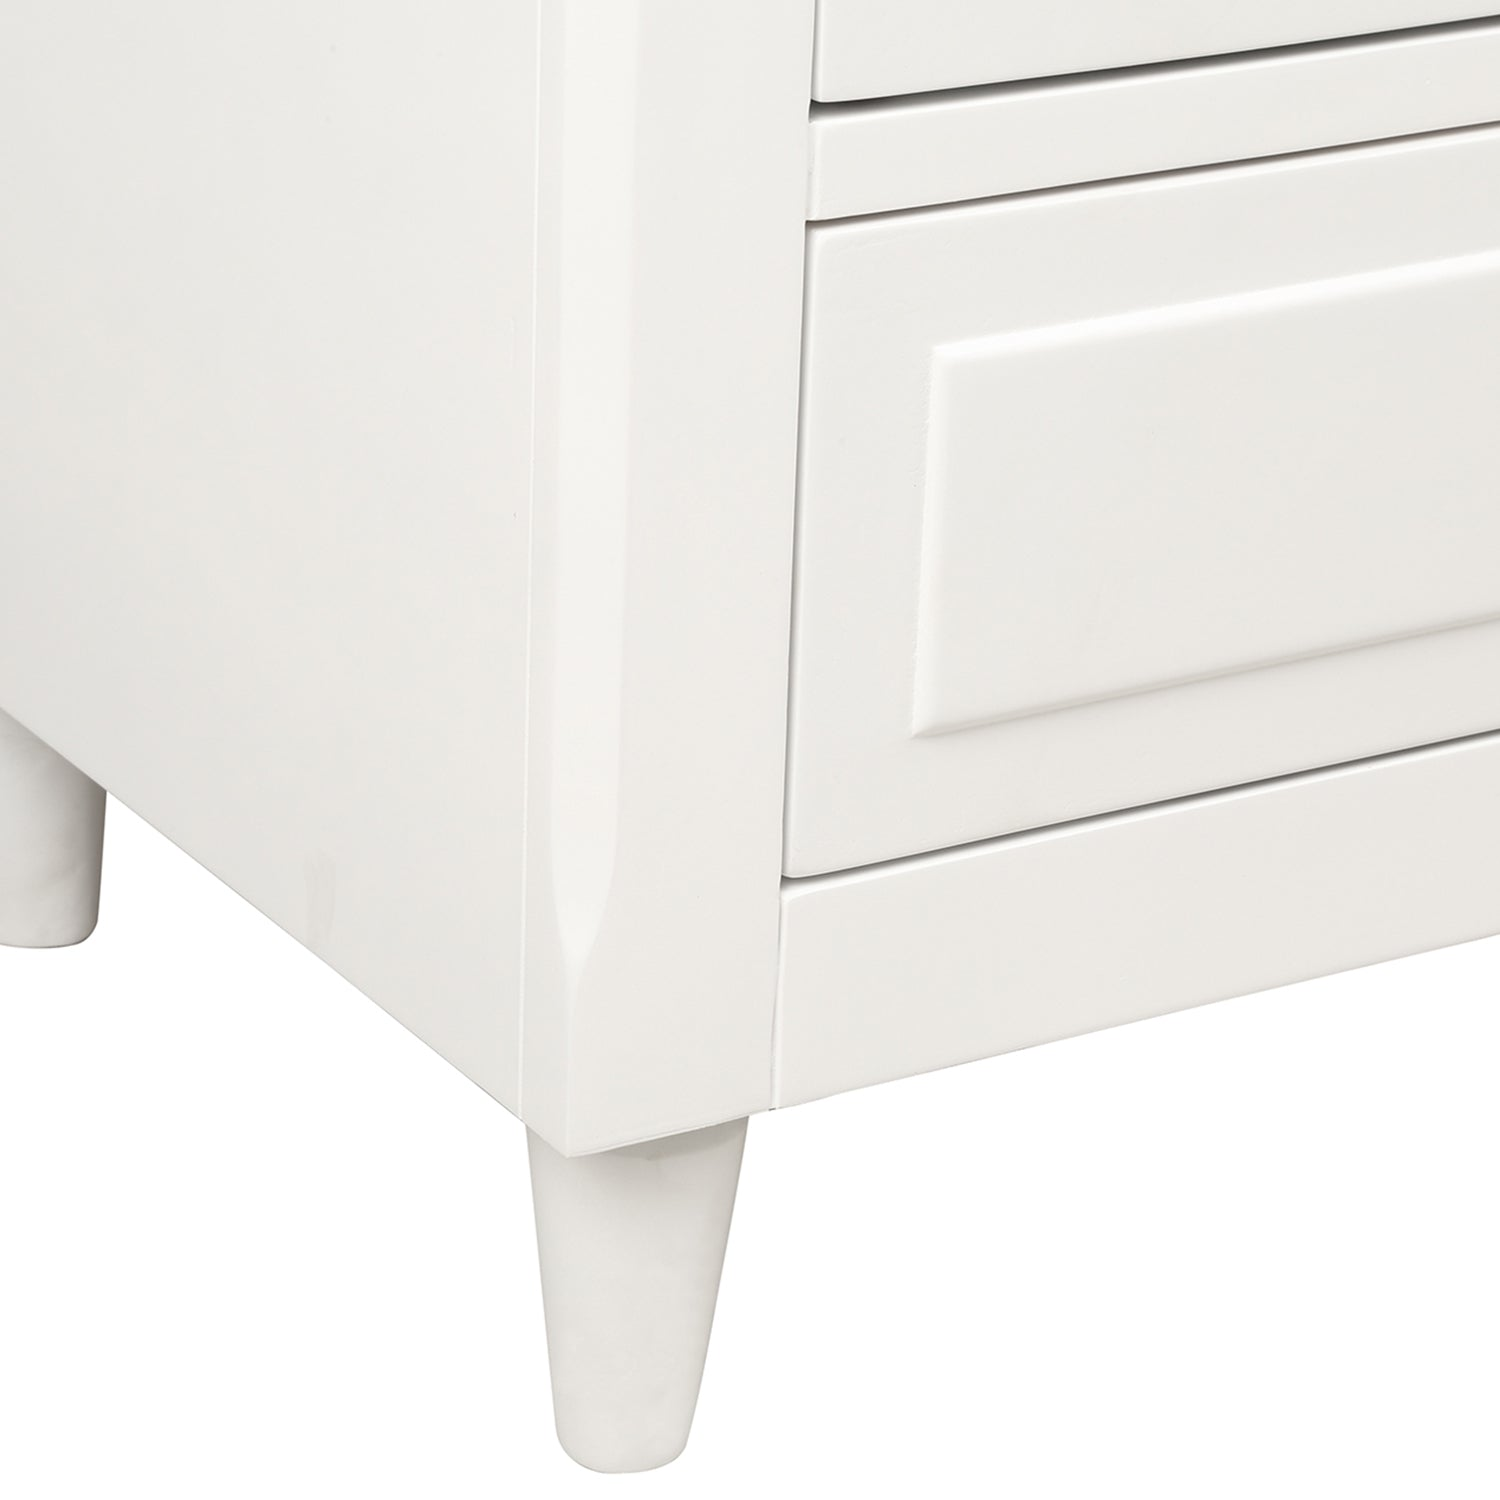 3 - Drawer Wood Nightstand Storage